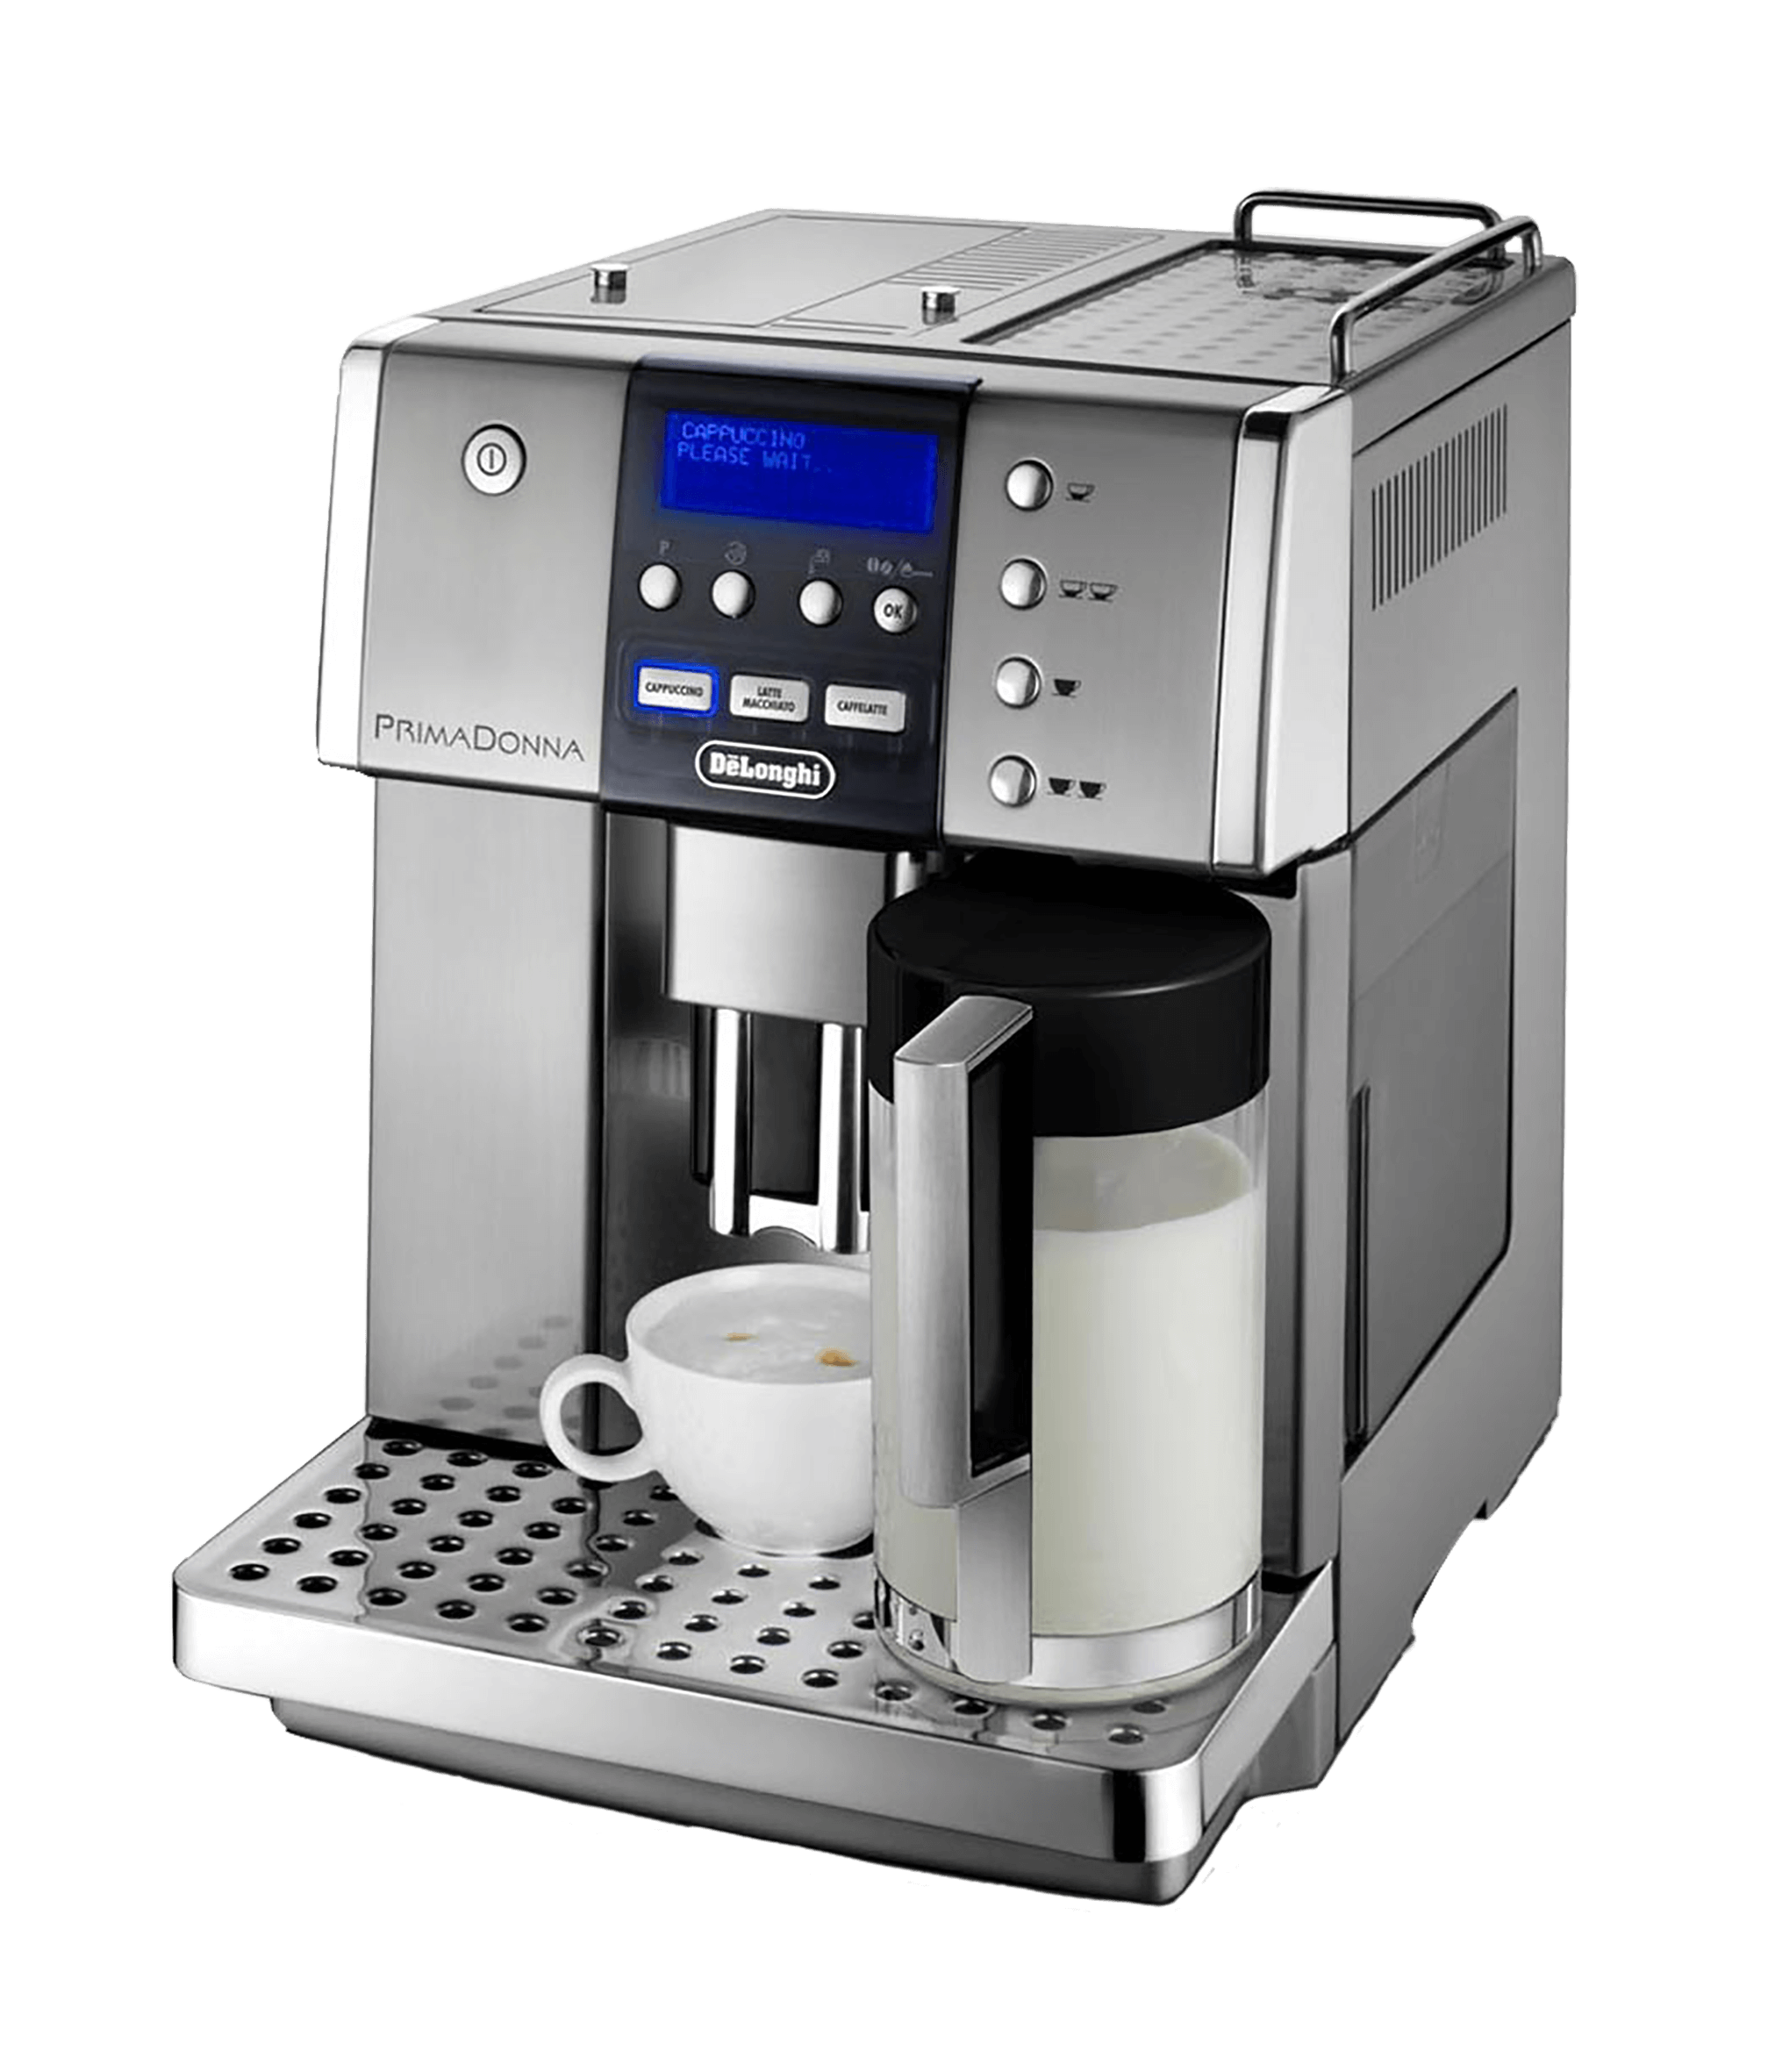 Coffee machine png. Machines transparent images stickpng